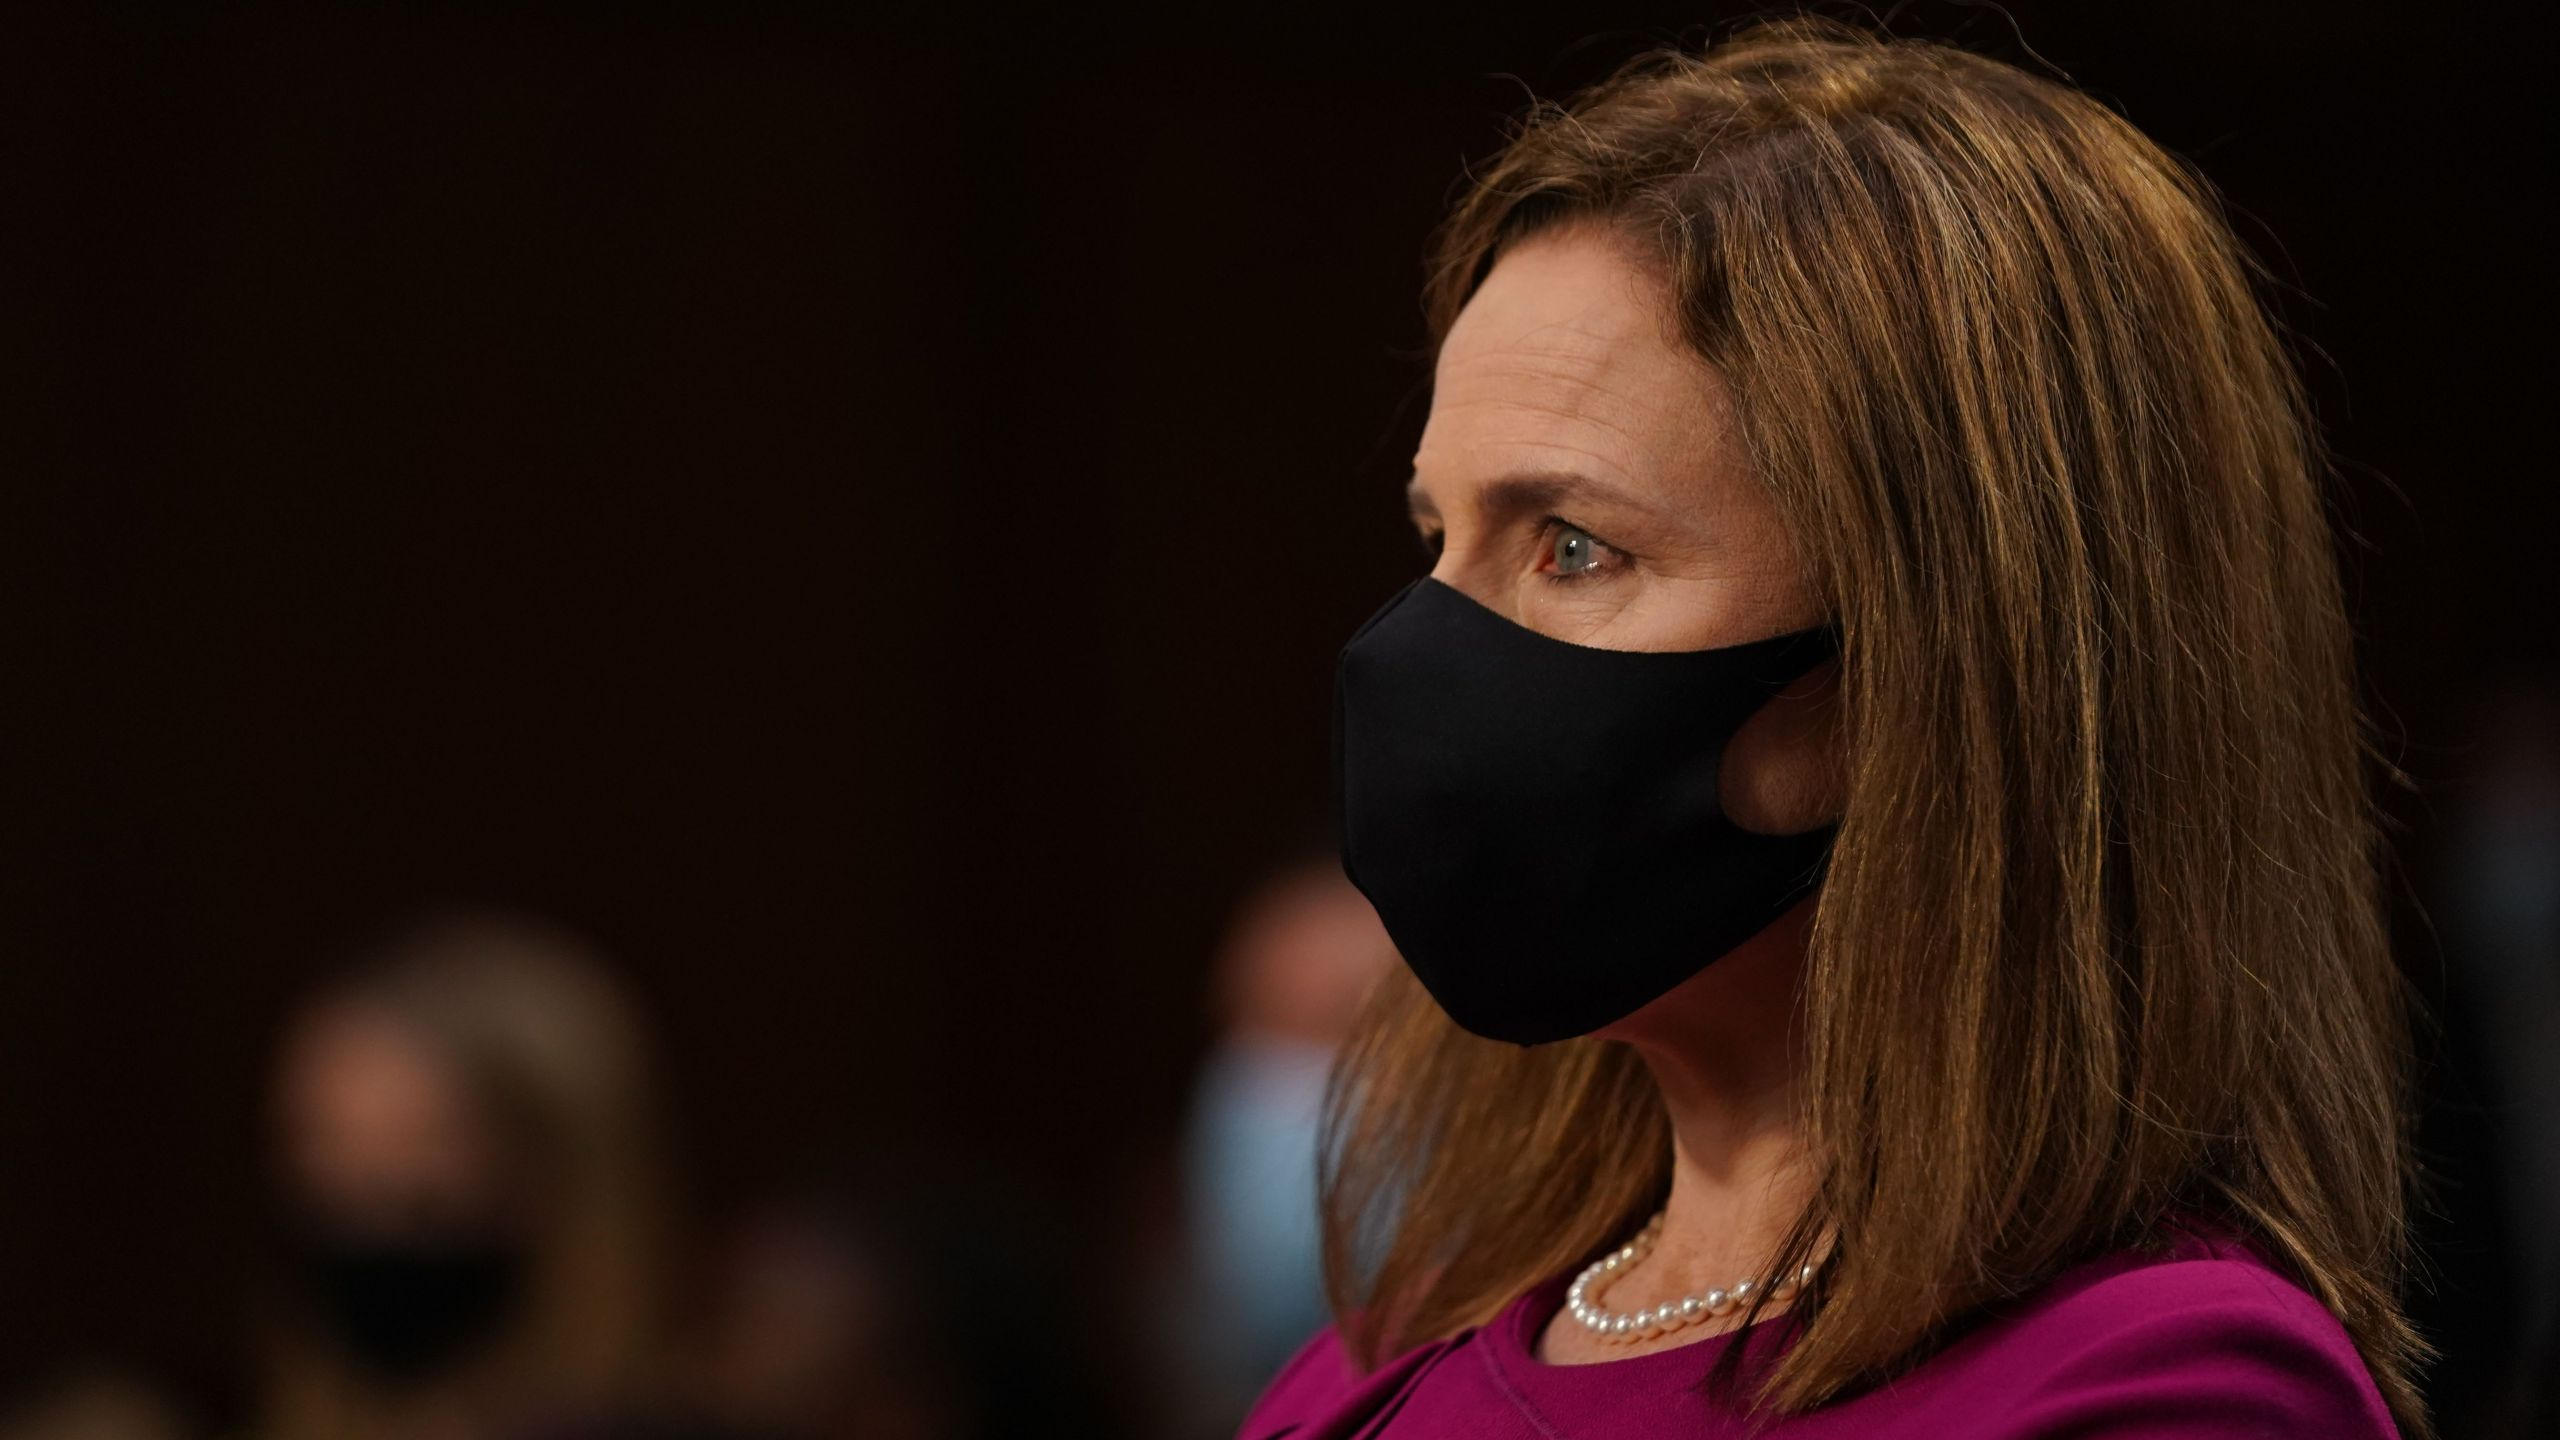 Amy Coney Barrett arrives for a confirmation hearing before the Senate Judiciary Committee, to become an Associate Justice of the US Supreme Court on Capitol, on Hill in Washington, DC on October 12, 2020. (ALEX EDELMAN/POOL/AFP via Getty Images)